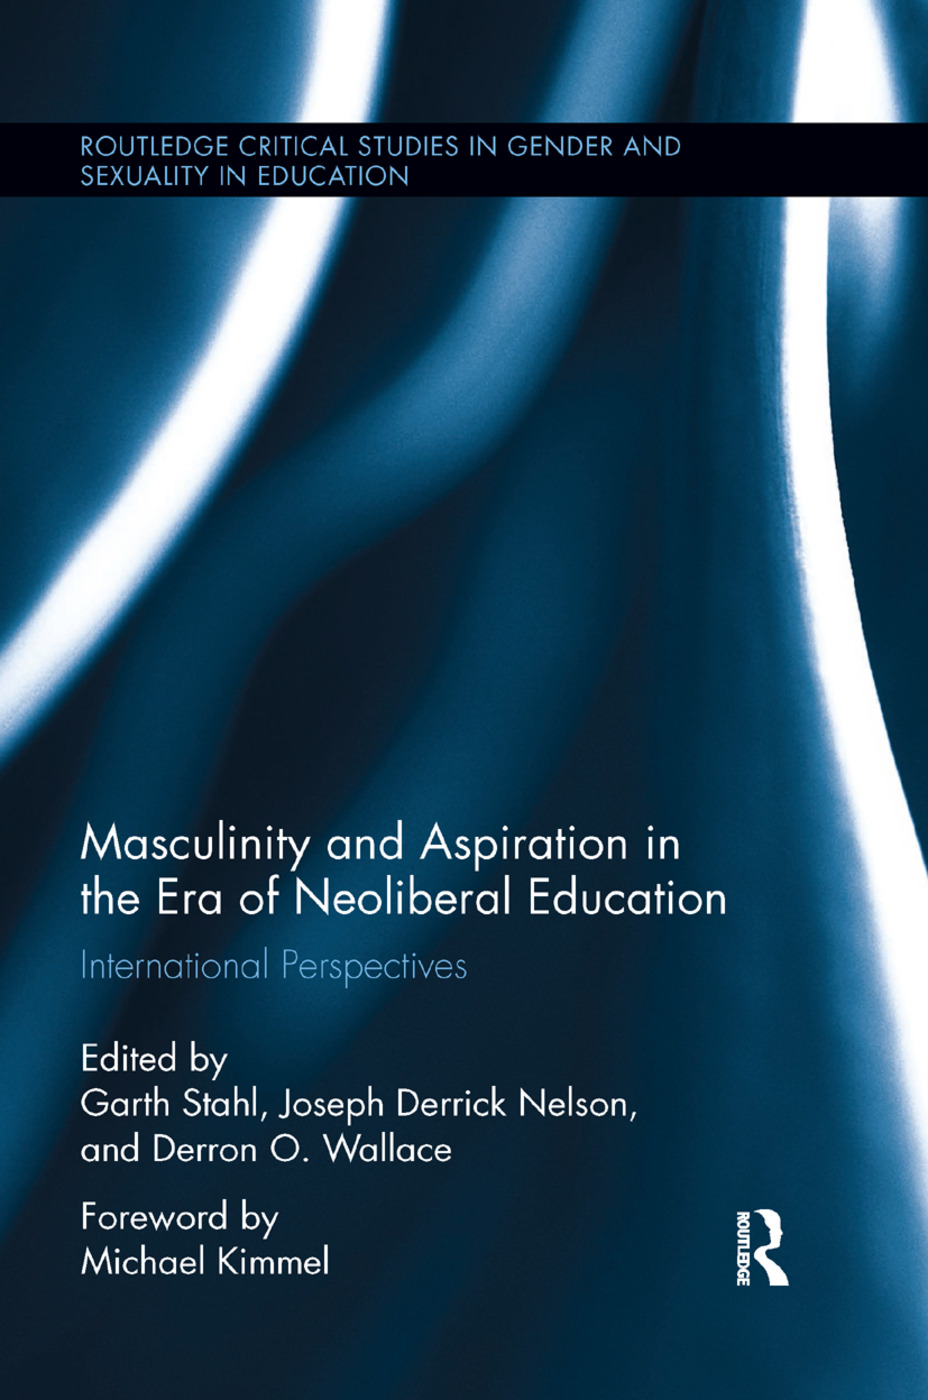 Masculinity and Aspiration in an Era of Neoliberal Education: International Perspectives book cover